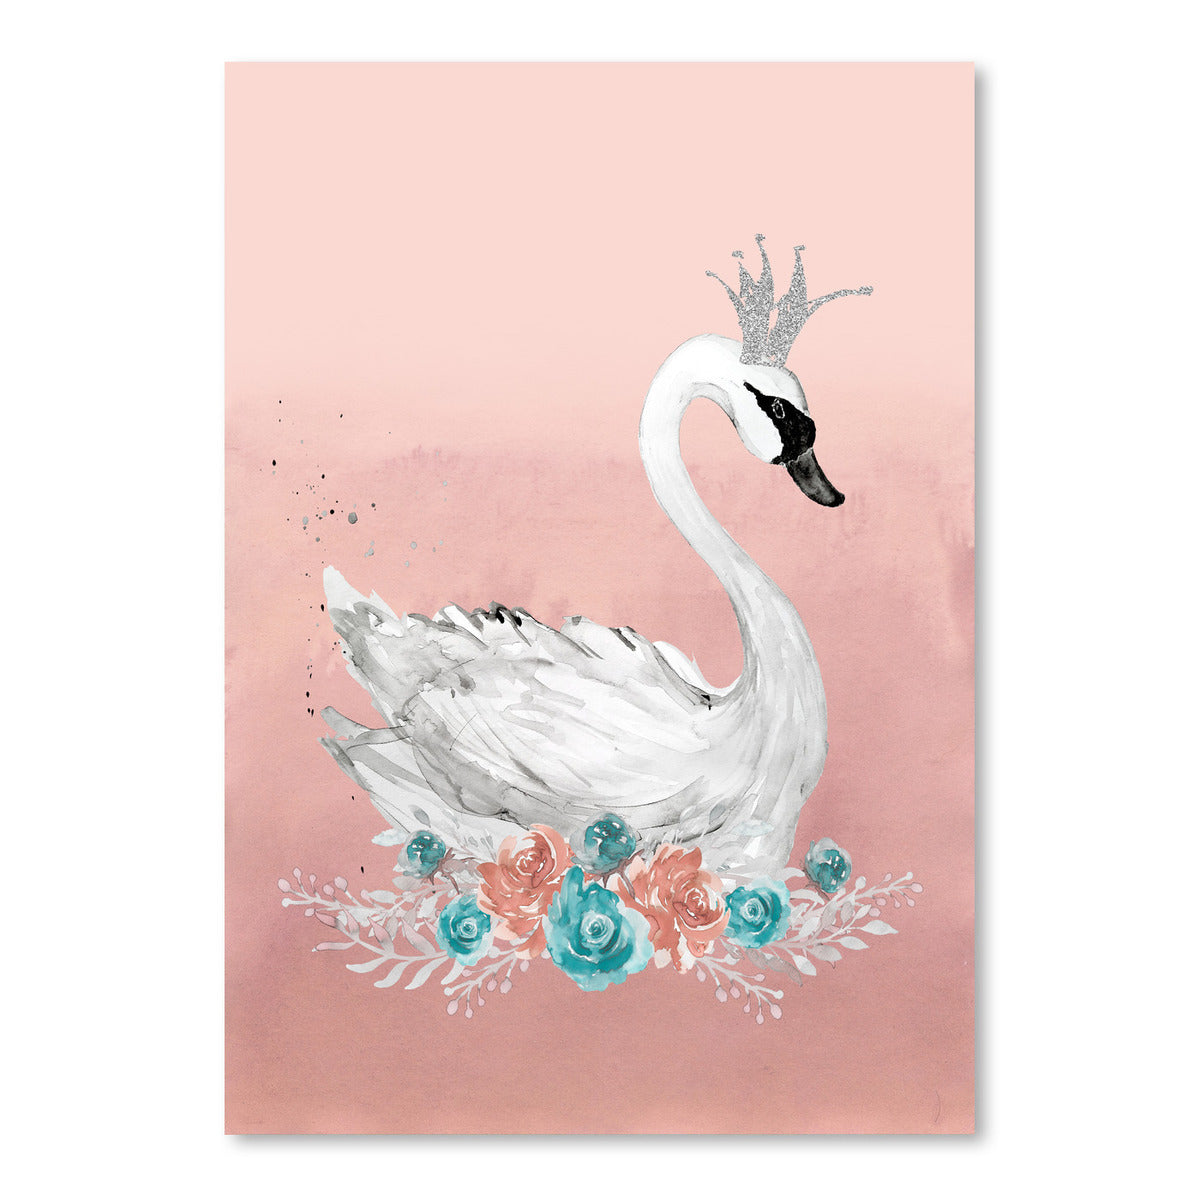 Swan Peach Teal Floral by Wall + Wonder - Art Print - Americanflat